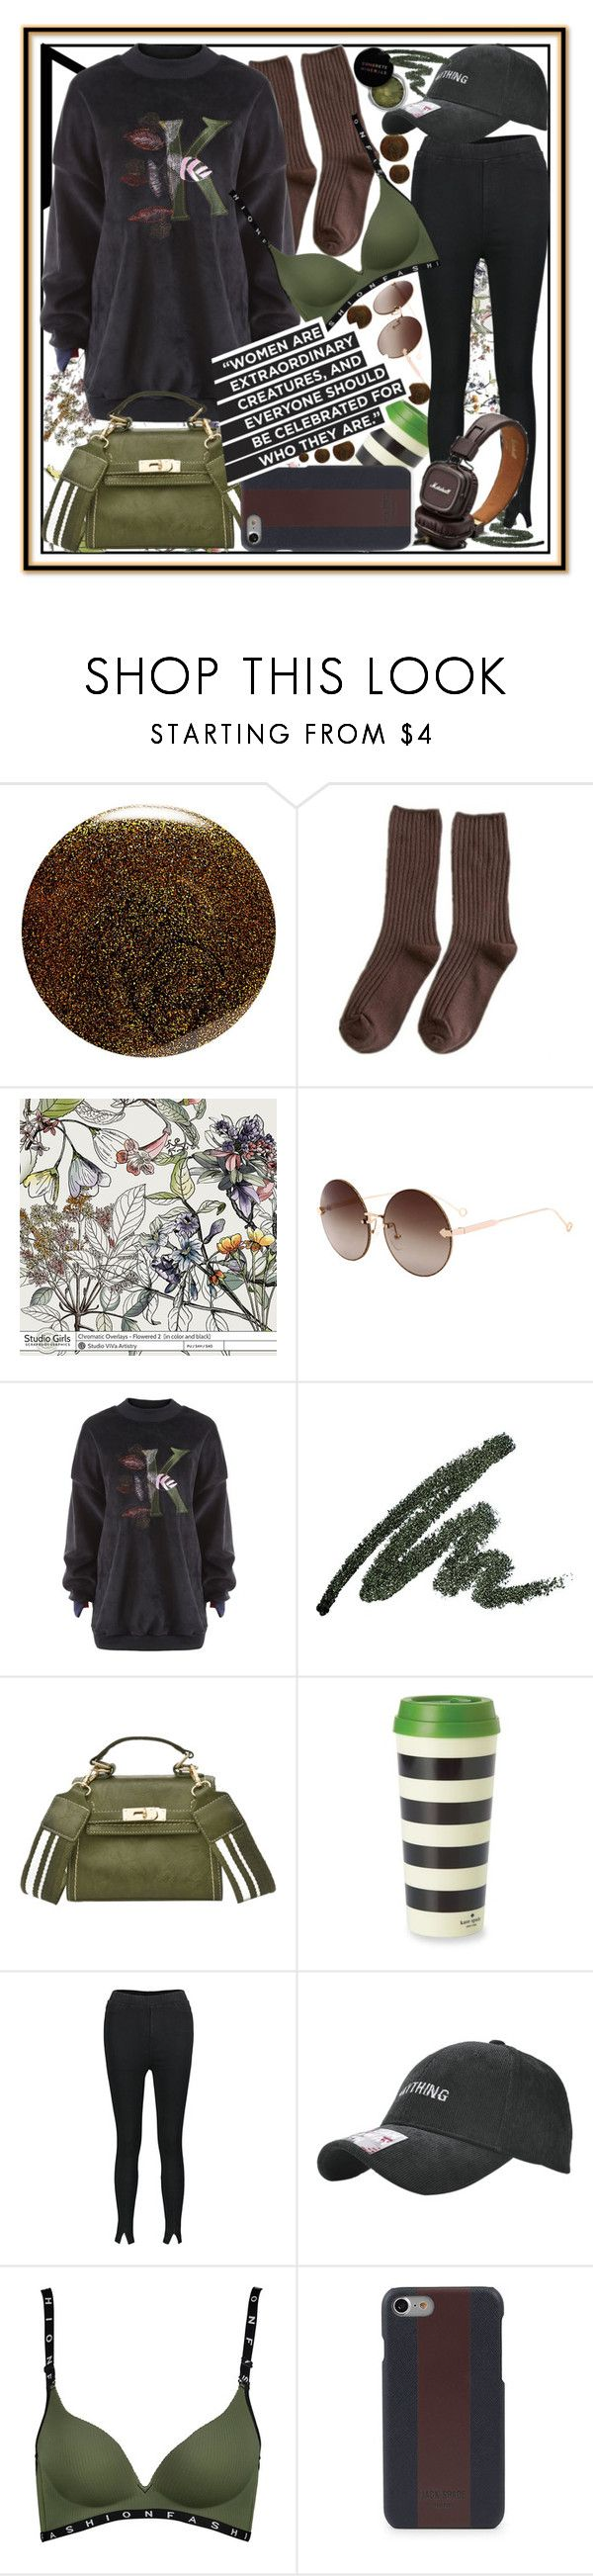 """""""Army-green going out,boys and girls-watch out!"""" by jelena-bozovic-1 on Polyvore featuring JINsoon, Kate Spade and Jack Spade"""